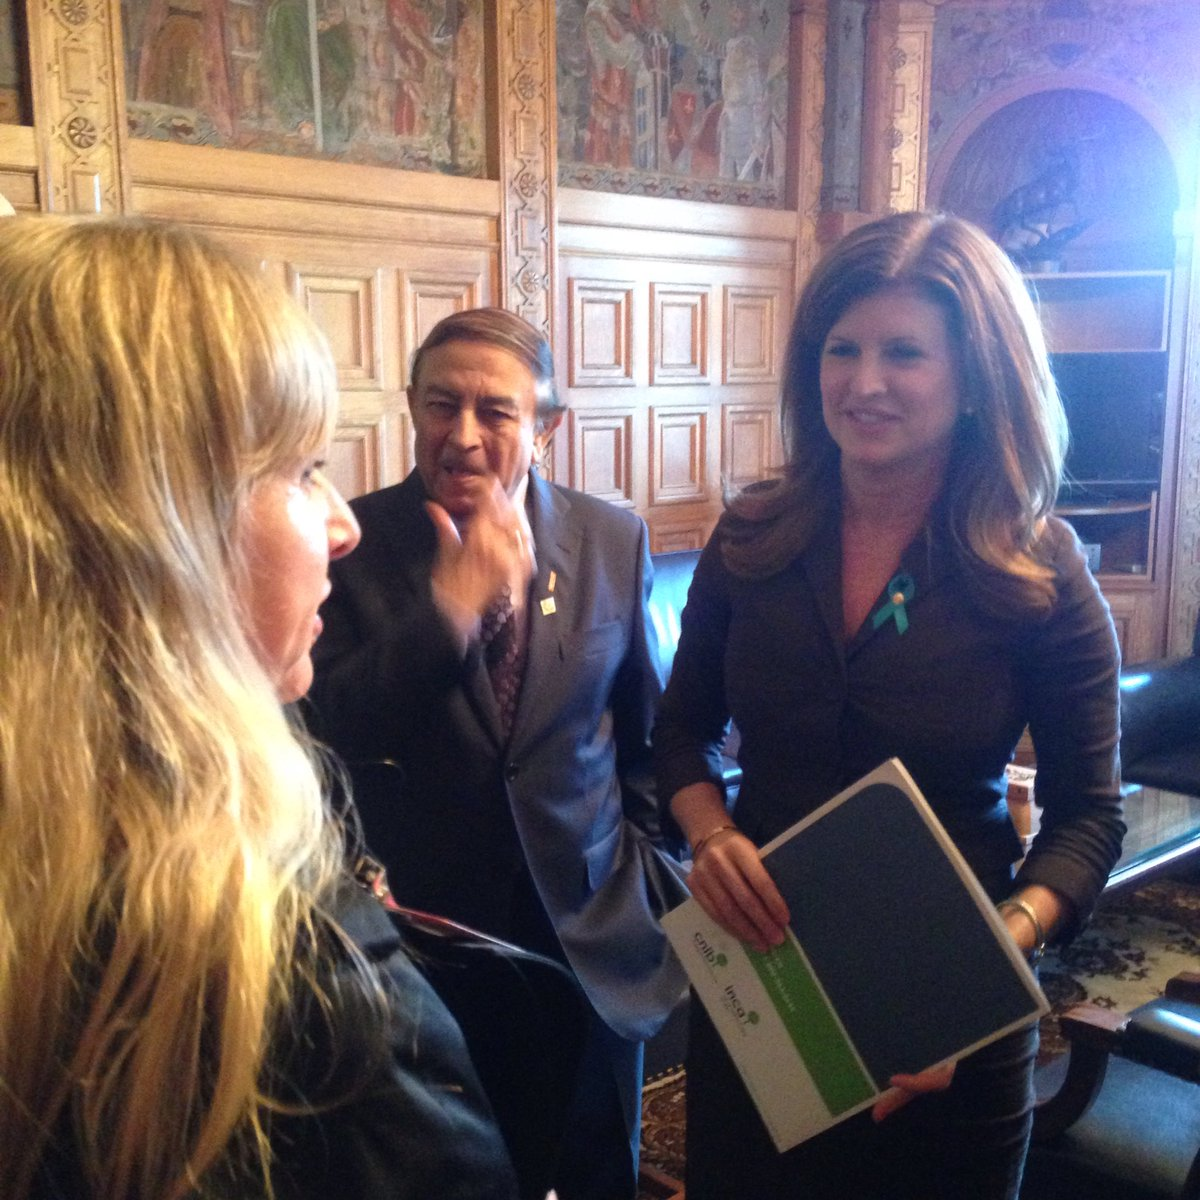 Meeting with @RonaAmbrose for #VisionHealthMonth2016 #whatisblindness https://t.co/1I0yLP5b4Q